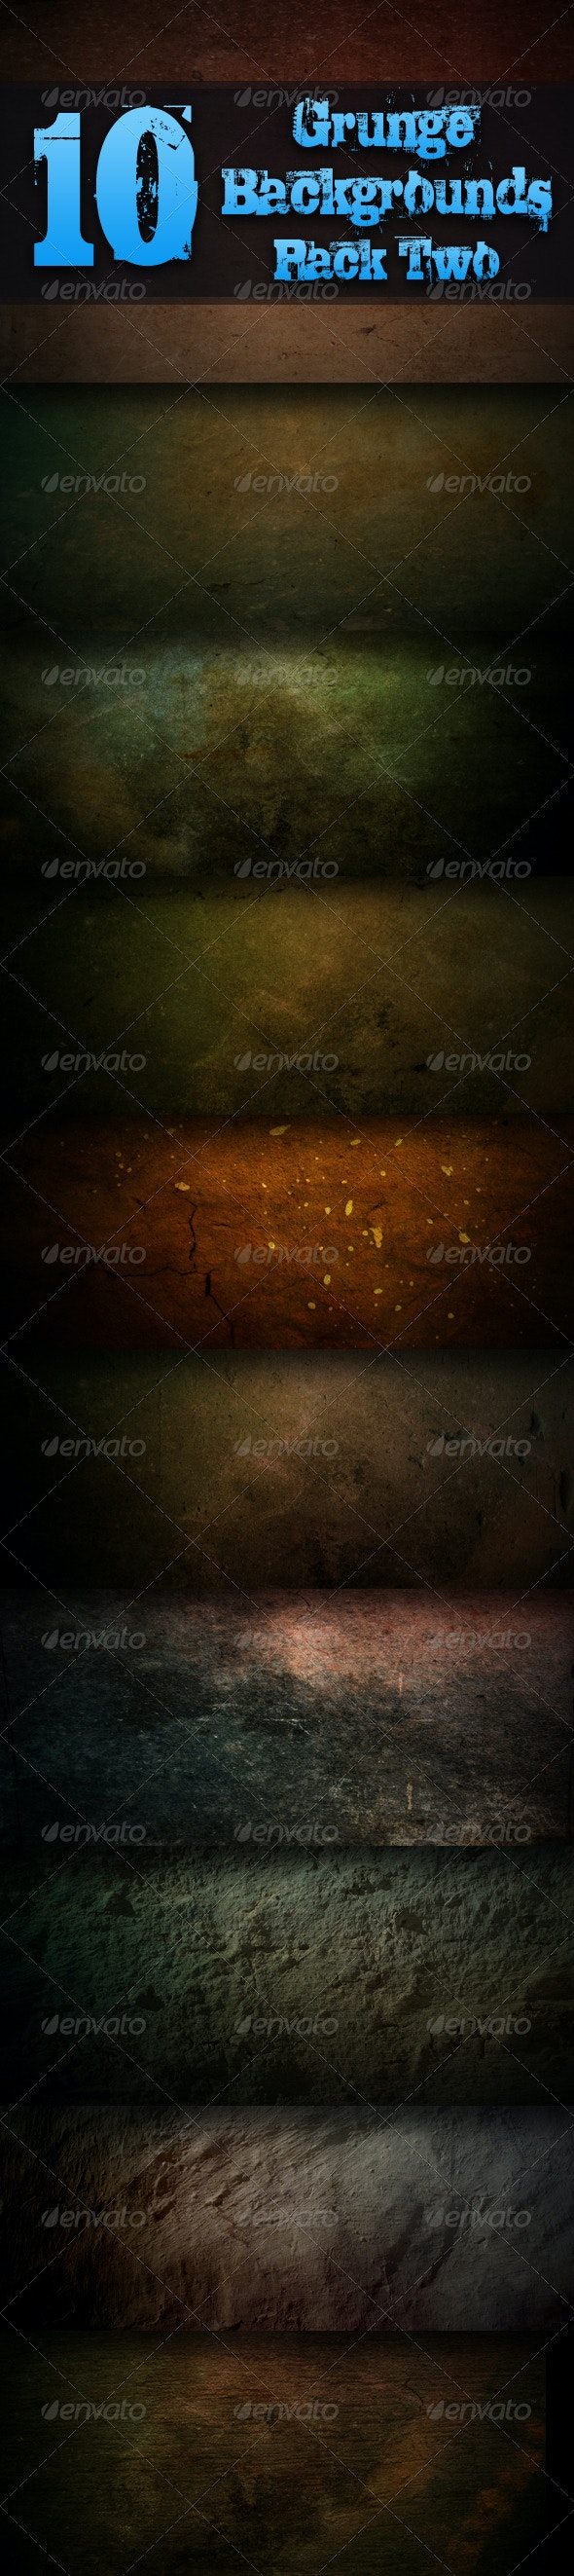 10 Grunge Background Textures - Pack Two - Industrial / Grunge Textures